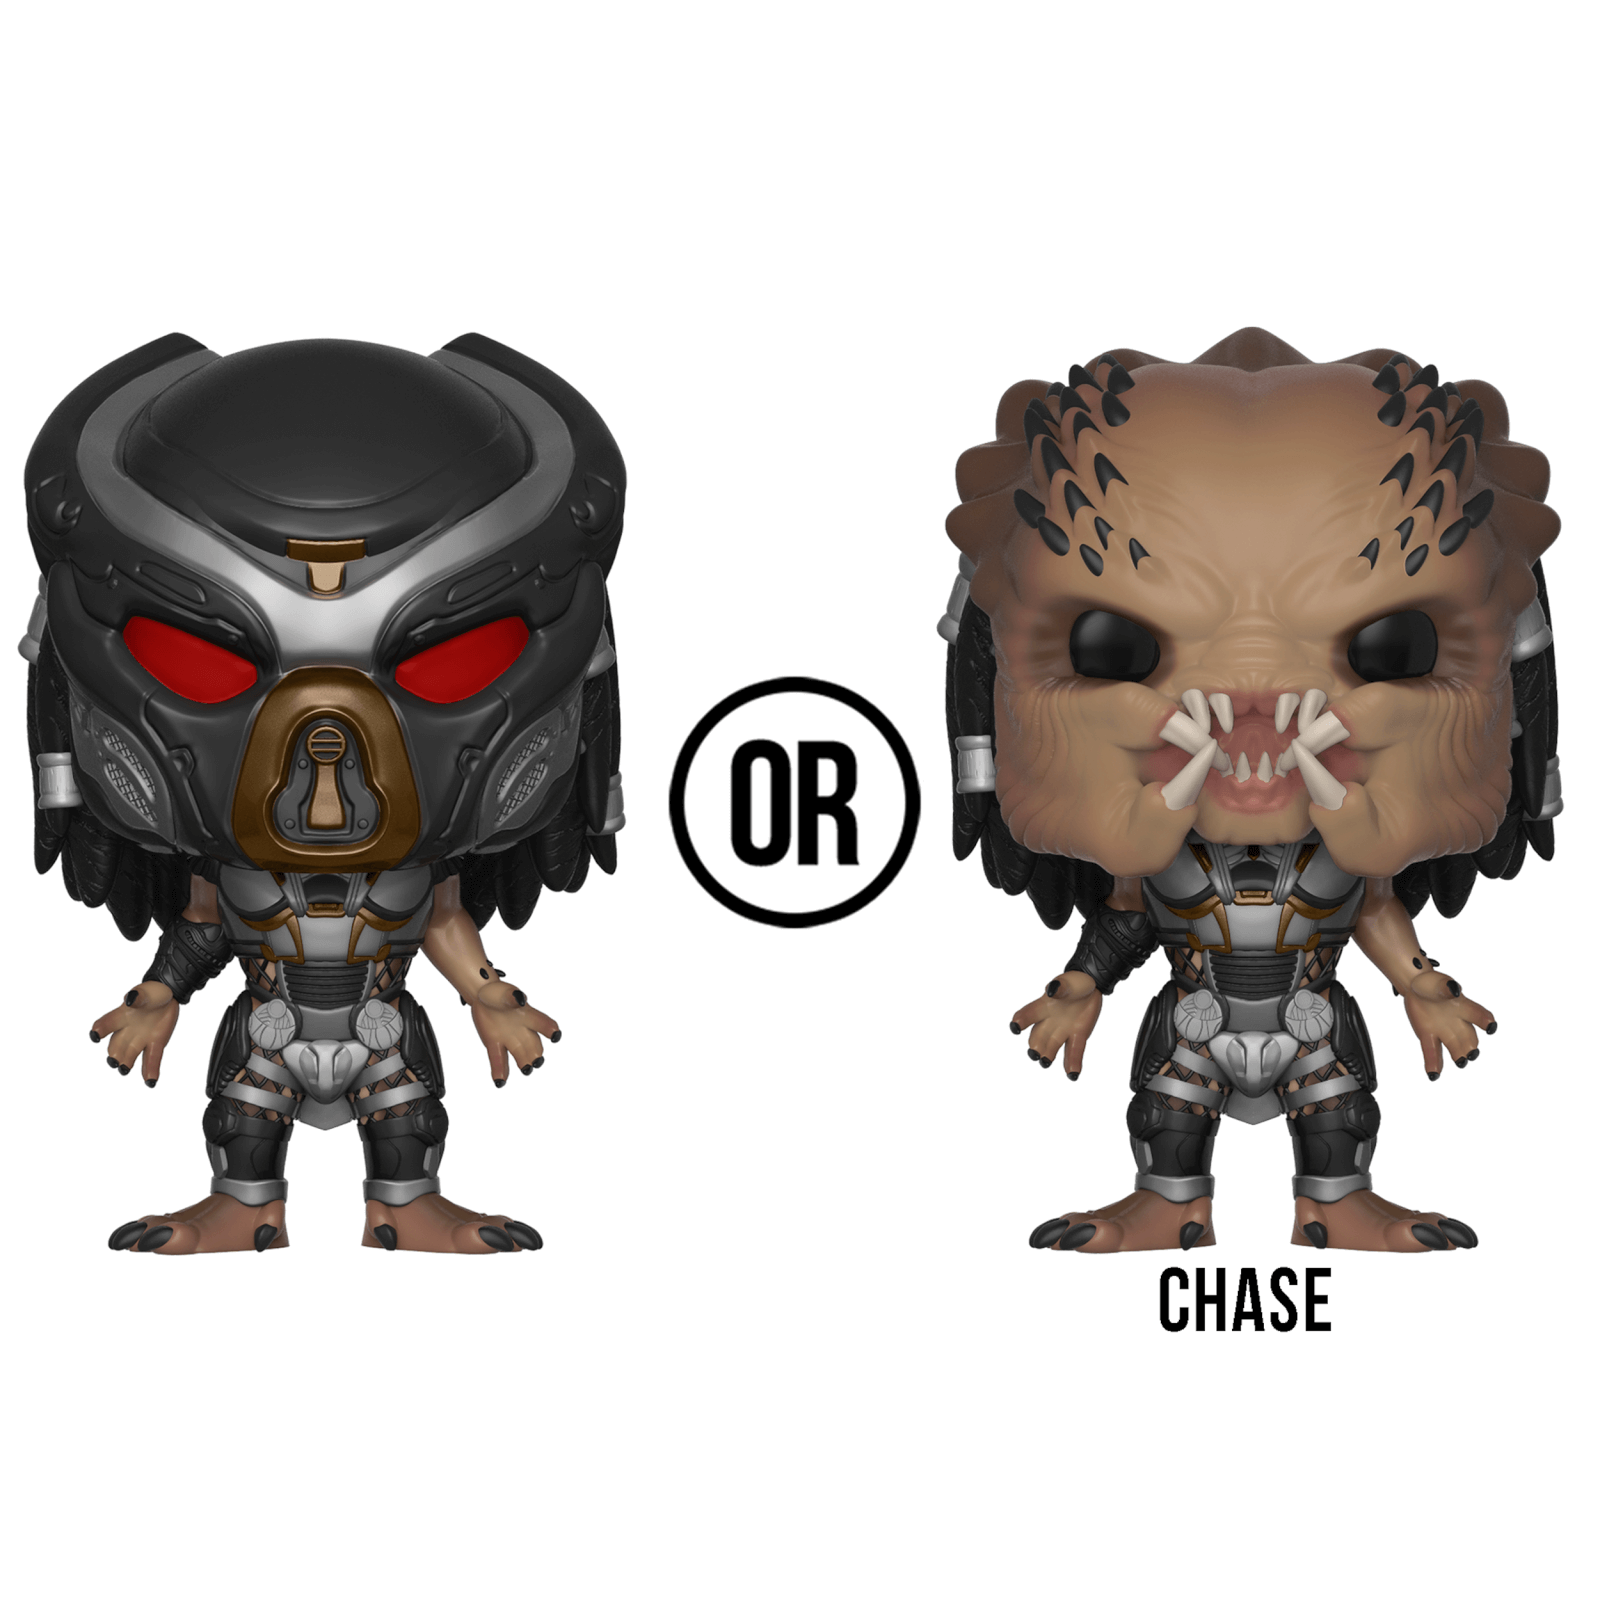 Fugitive Predator - The Predator Pop! Vinyl (with chase)